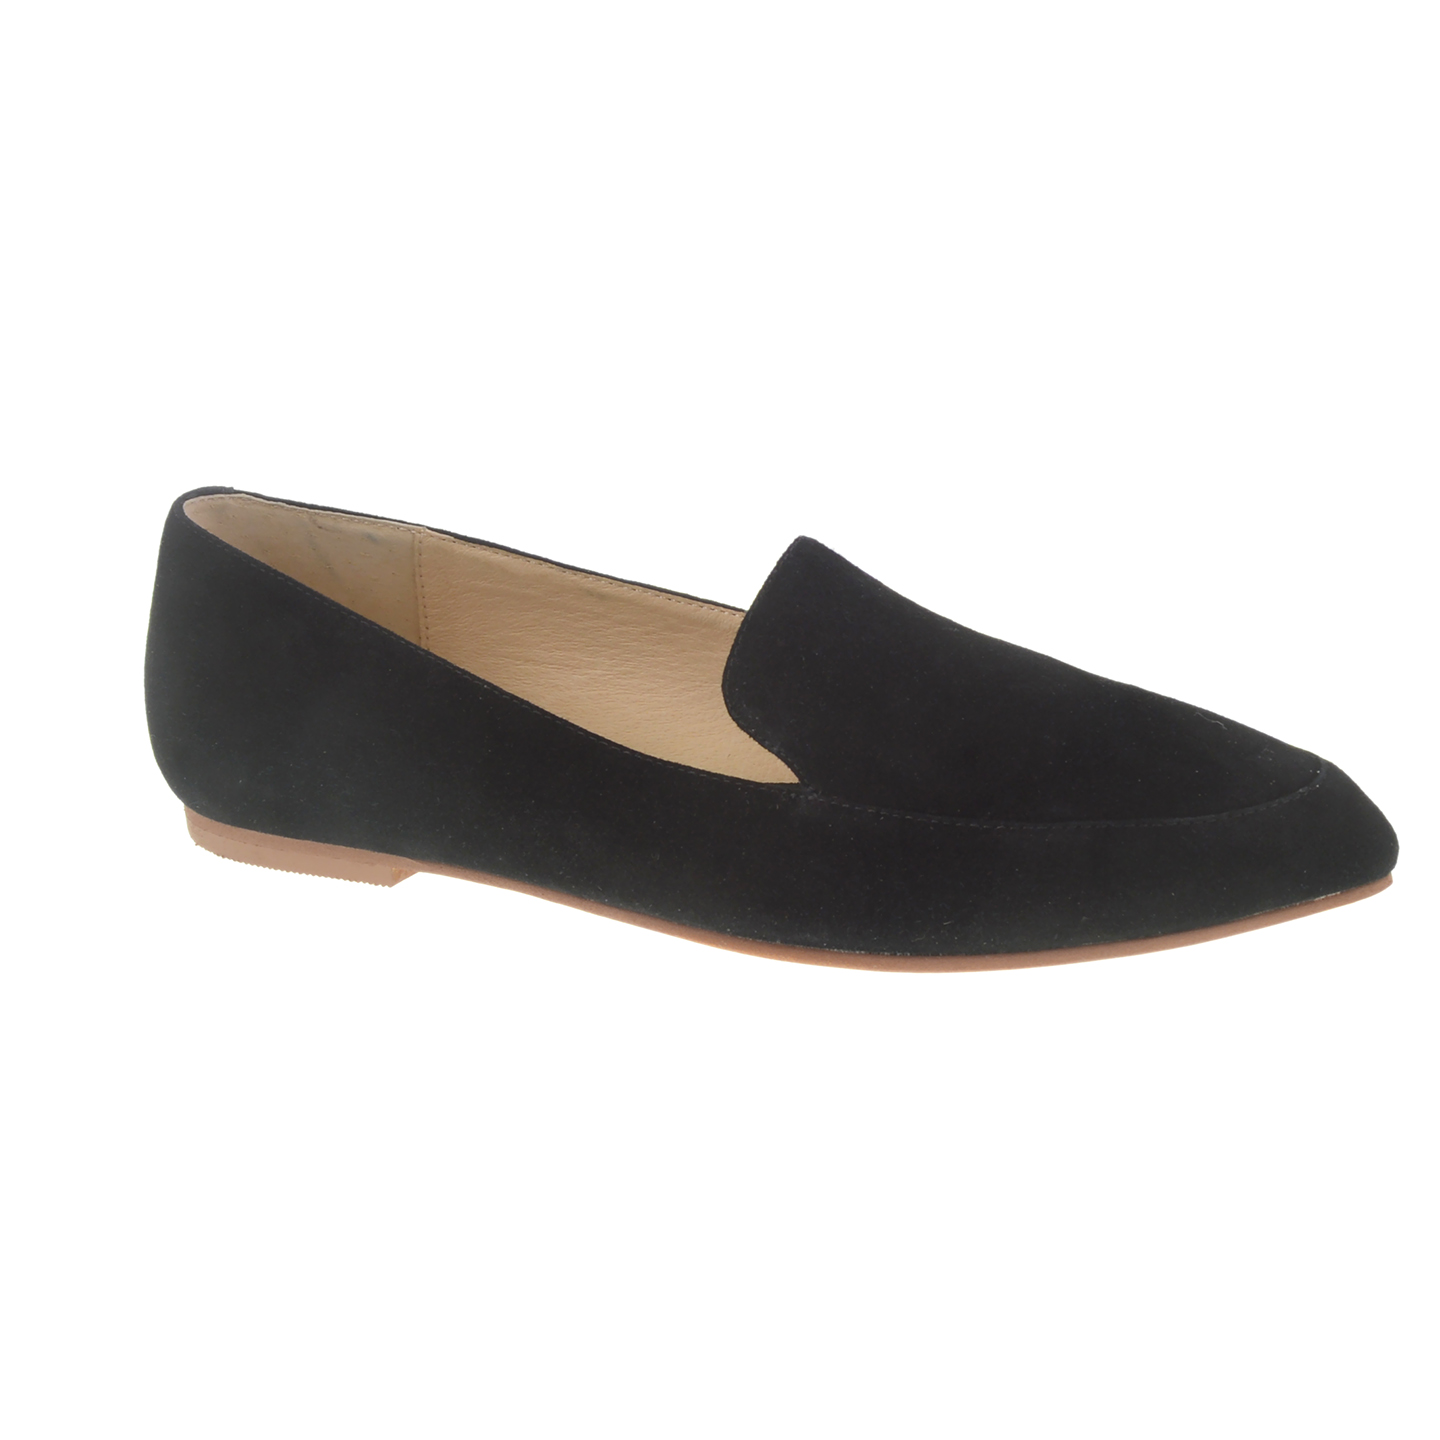 Kristin Cavallari Chandy Suede Loafer | Chinese Laundry